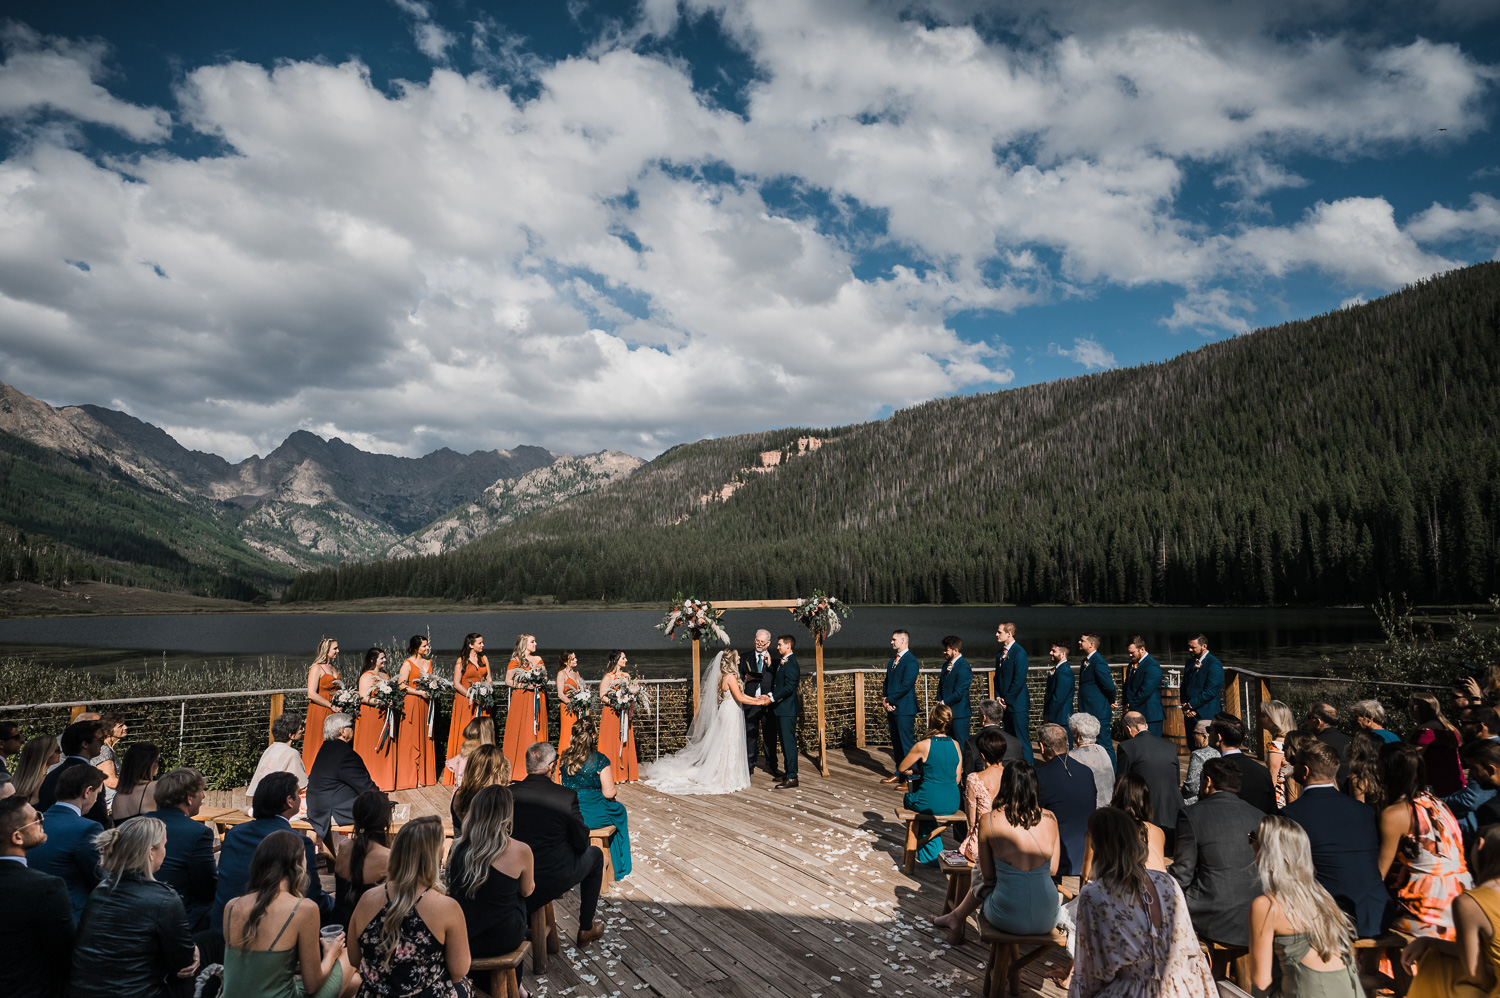 Piney River Ranch Lake Dock Wedding Ceremony in front of mountains with rust color bridesmaids dresses and blue suits for groomsmen